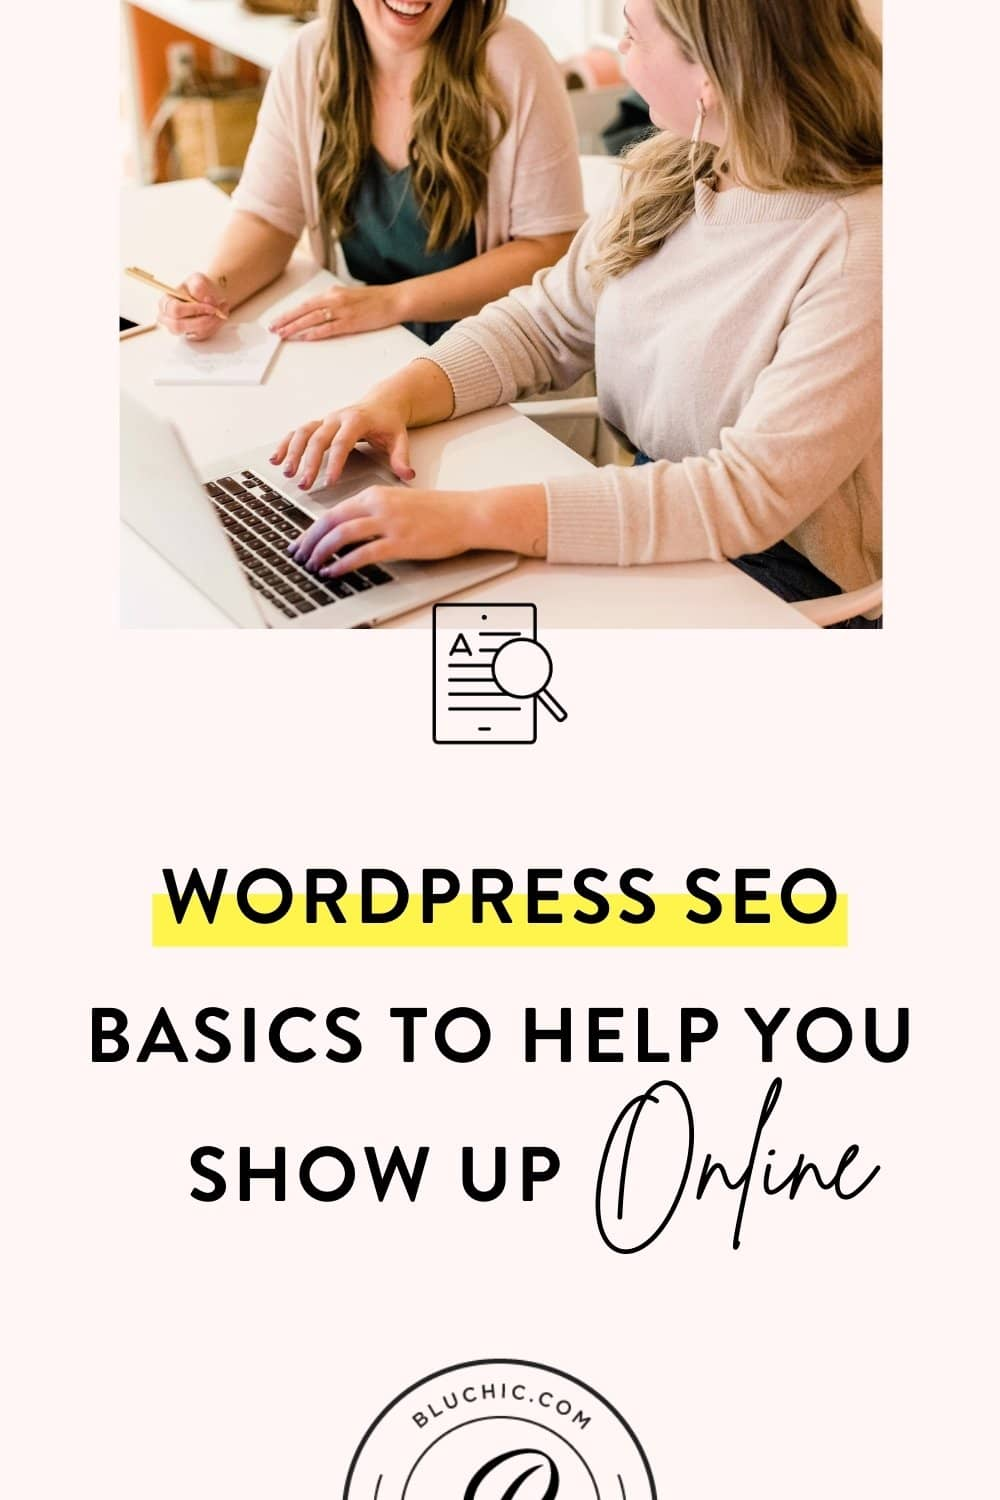 WordPress SEO Basics to Help You Show Up More Online | You want to show up more online but feel intimidated by what SEO even is. See our WordPress SEO Basics to help your site show up at the top of the search!